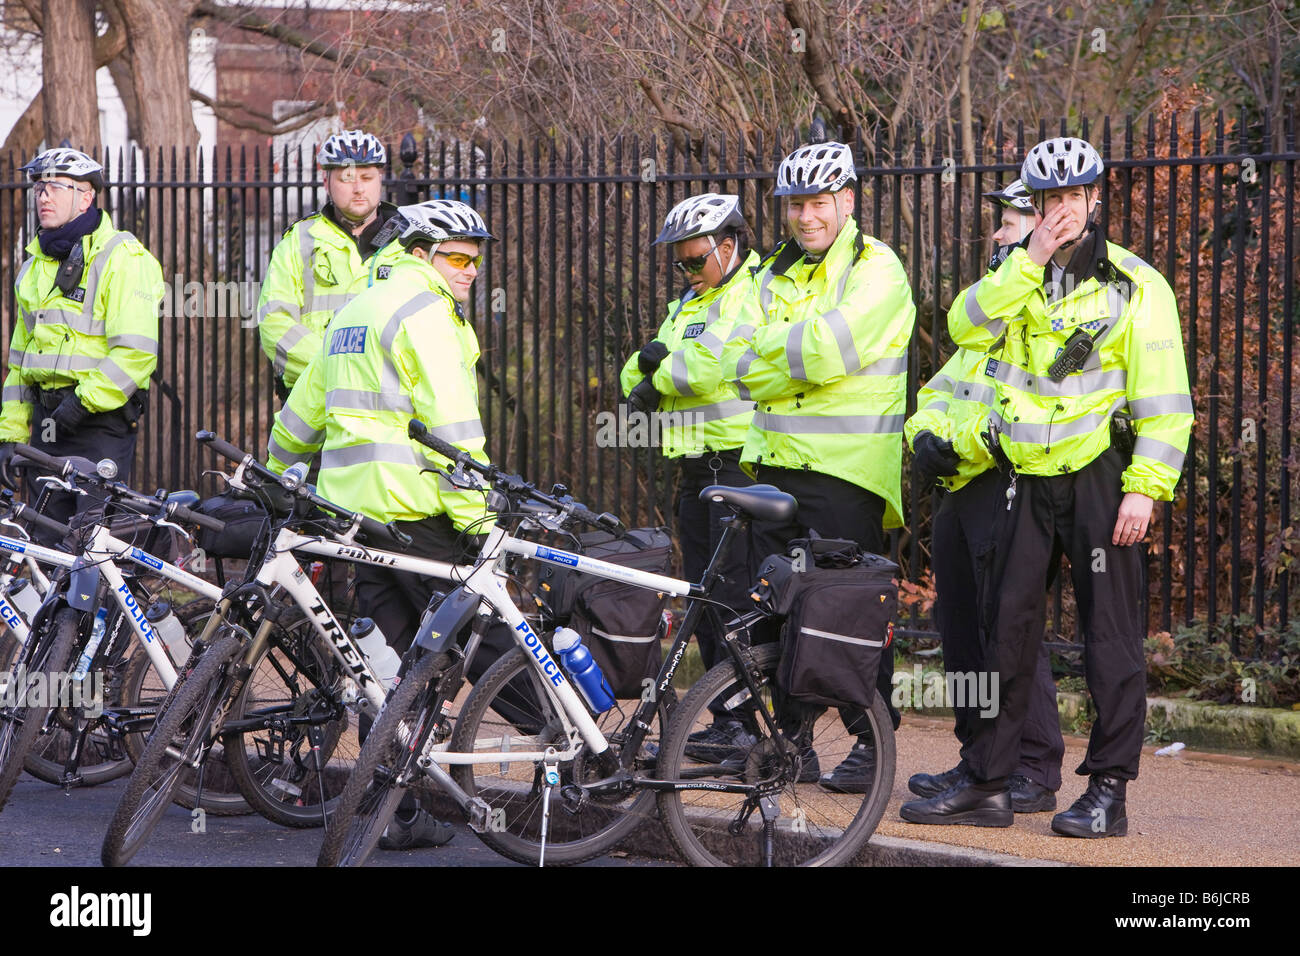 Police cyclists policing at a climate change rally in London December 2008 - Stock Image